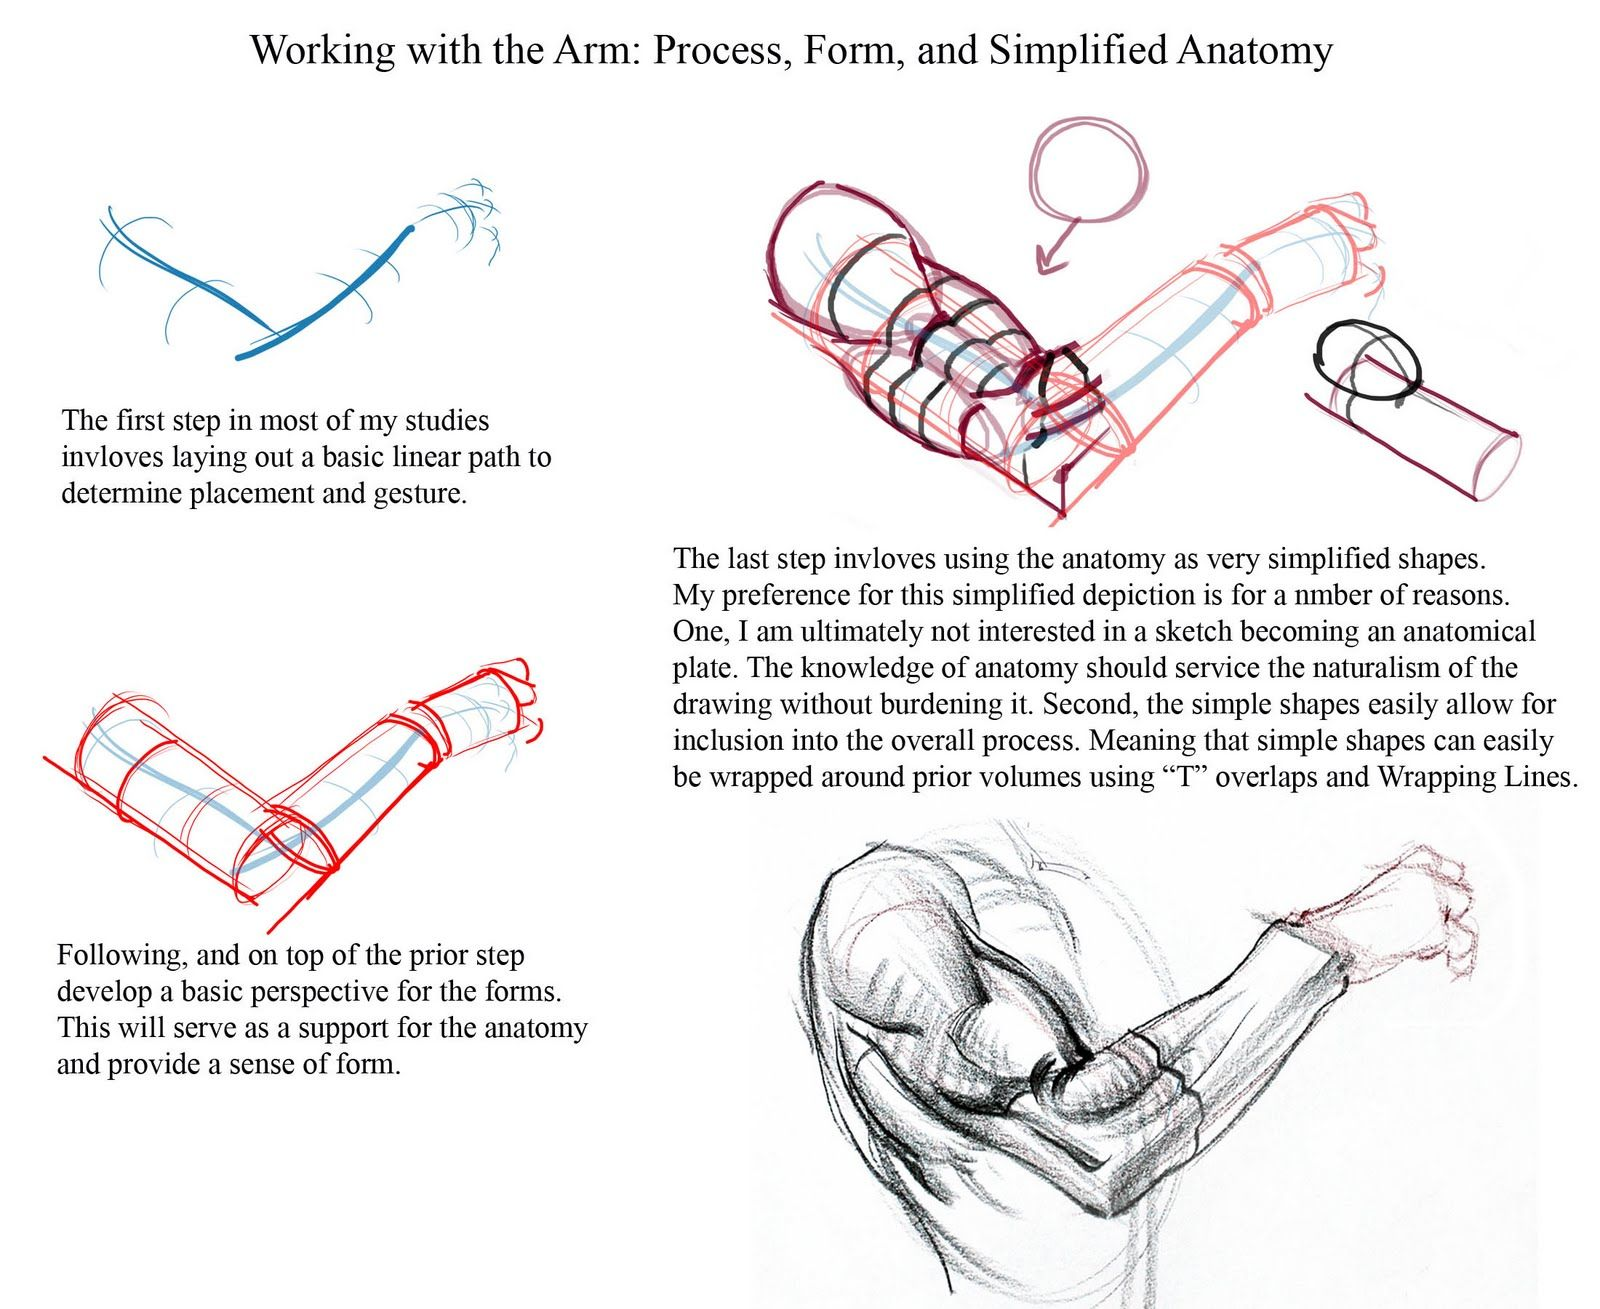 Arm+Process.jpg (1600×1309) | Arm Anatomy | Pinterest | Anatomy ...